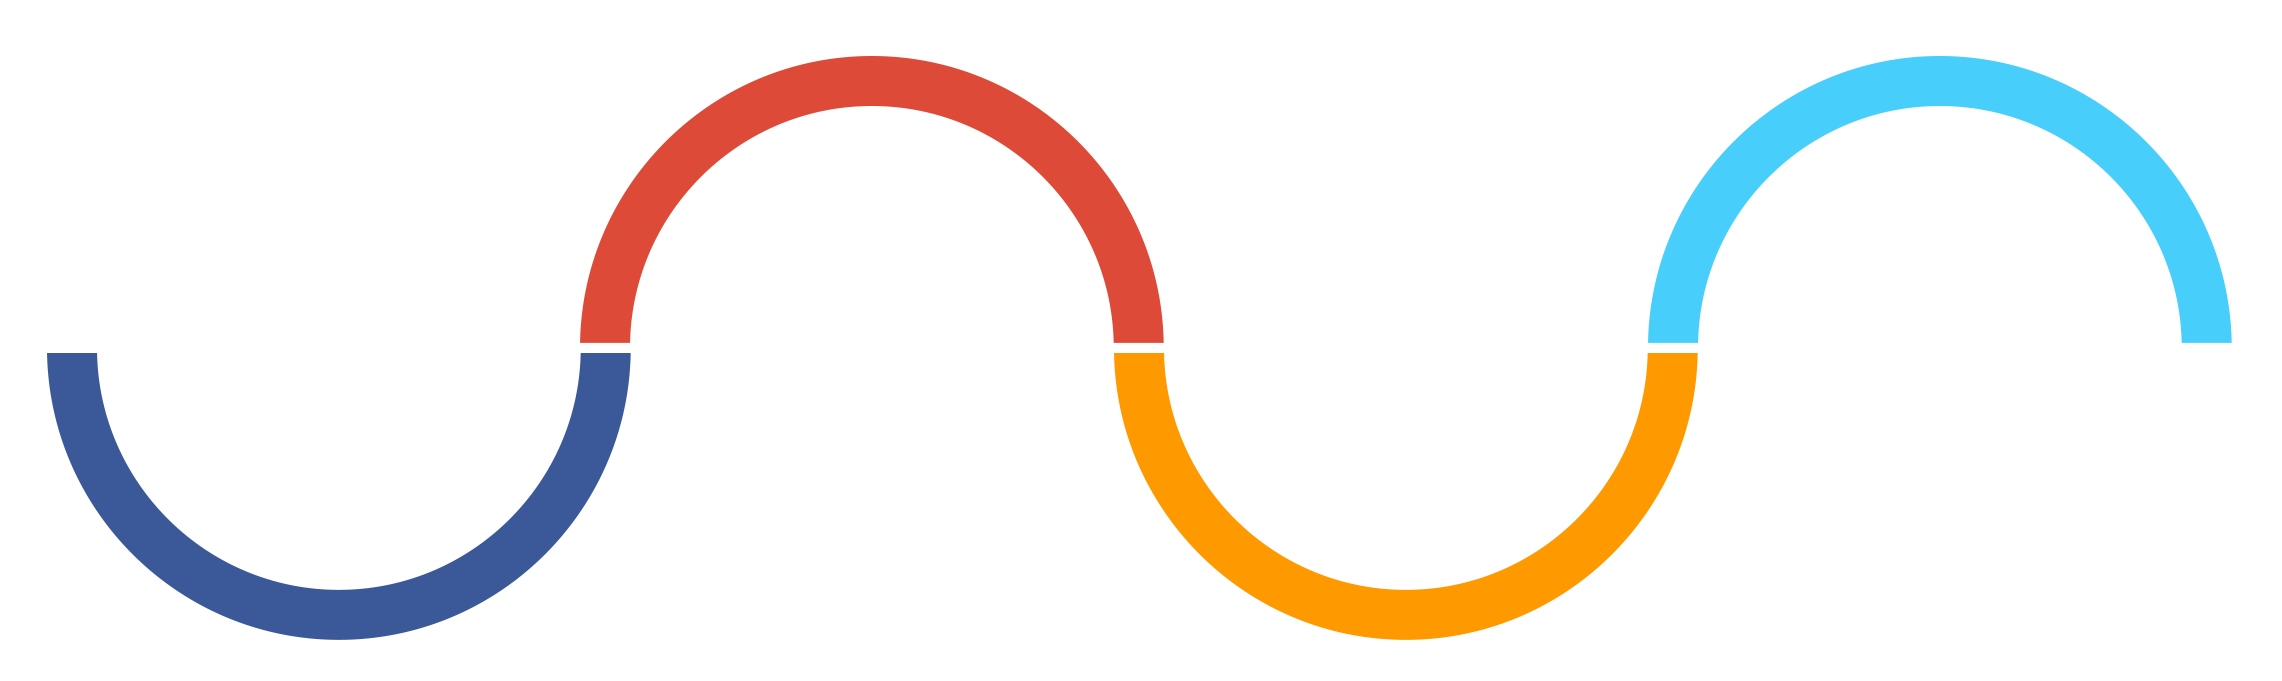 Squiglly Line In Different Colours